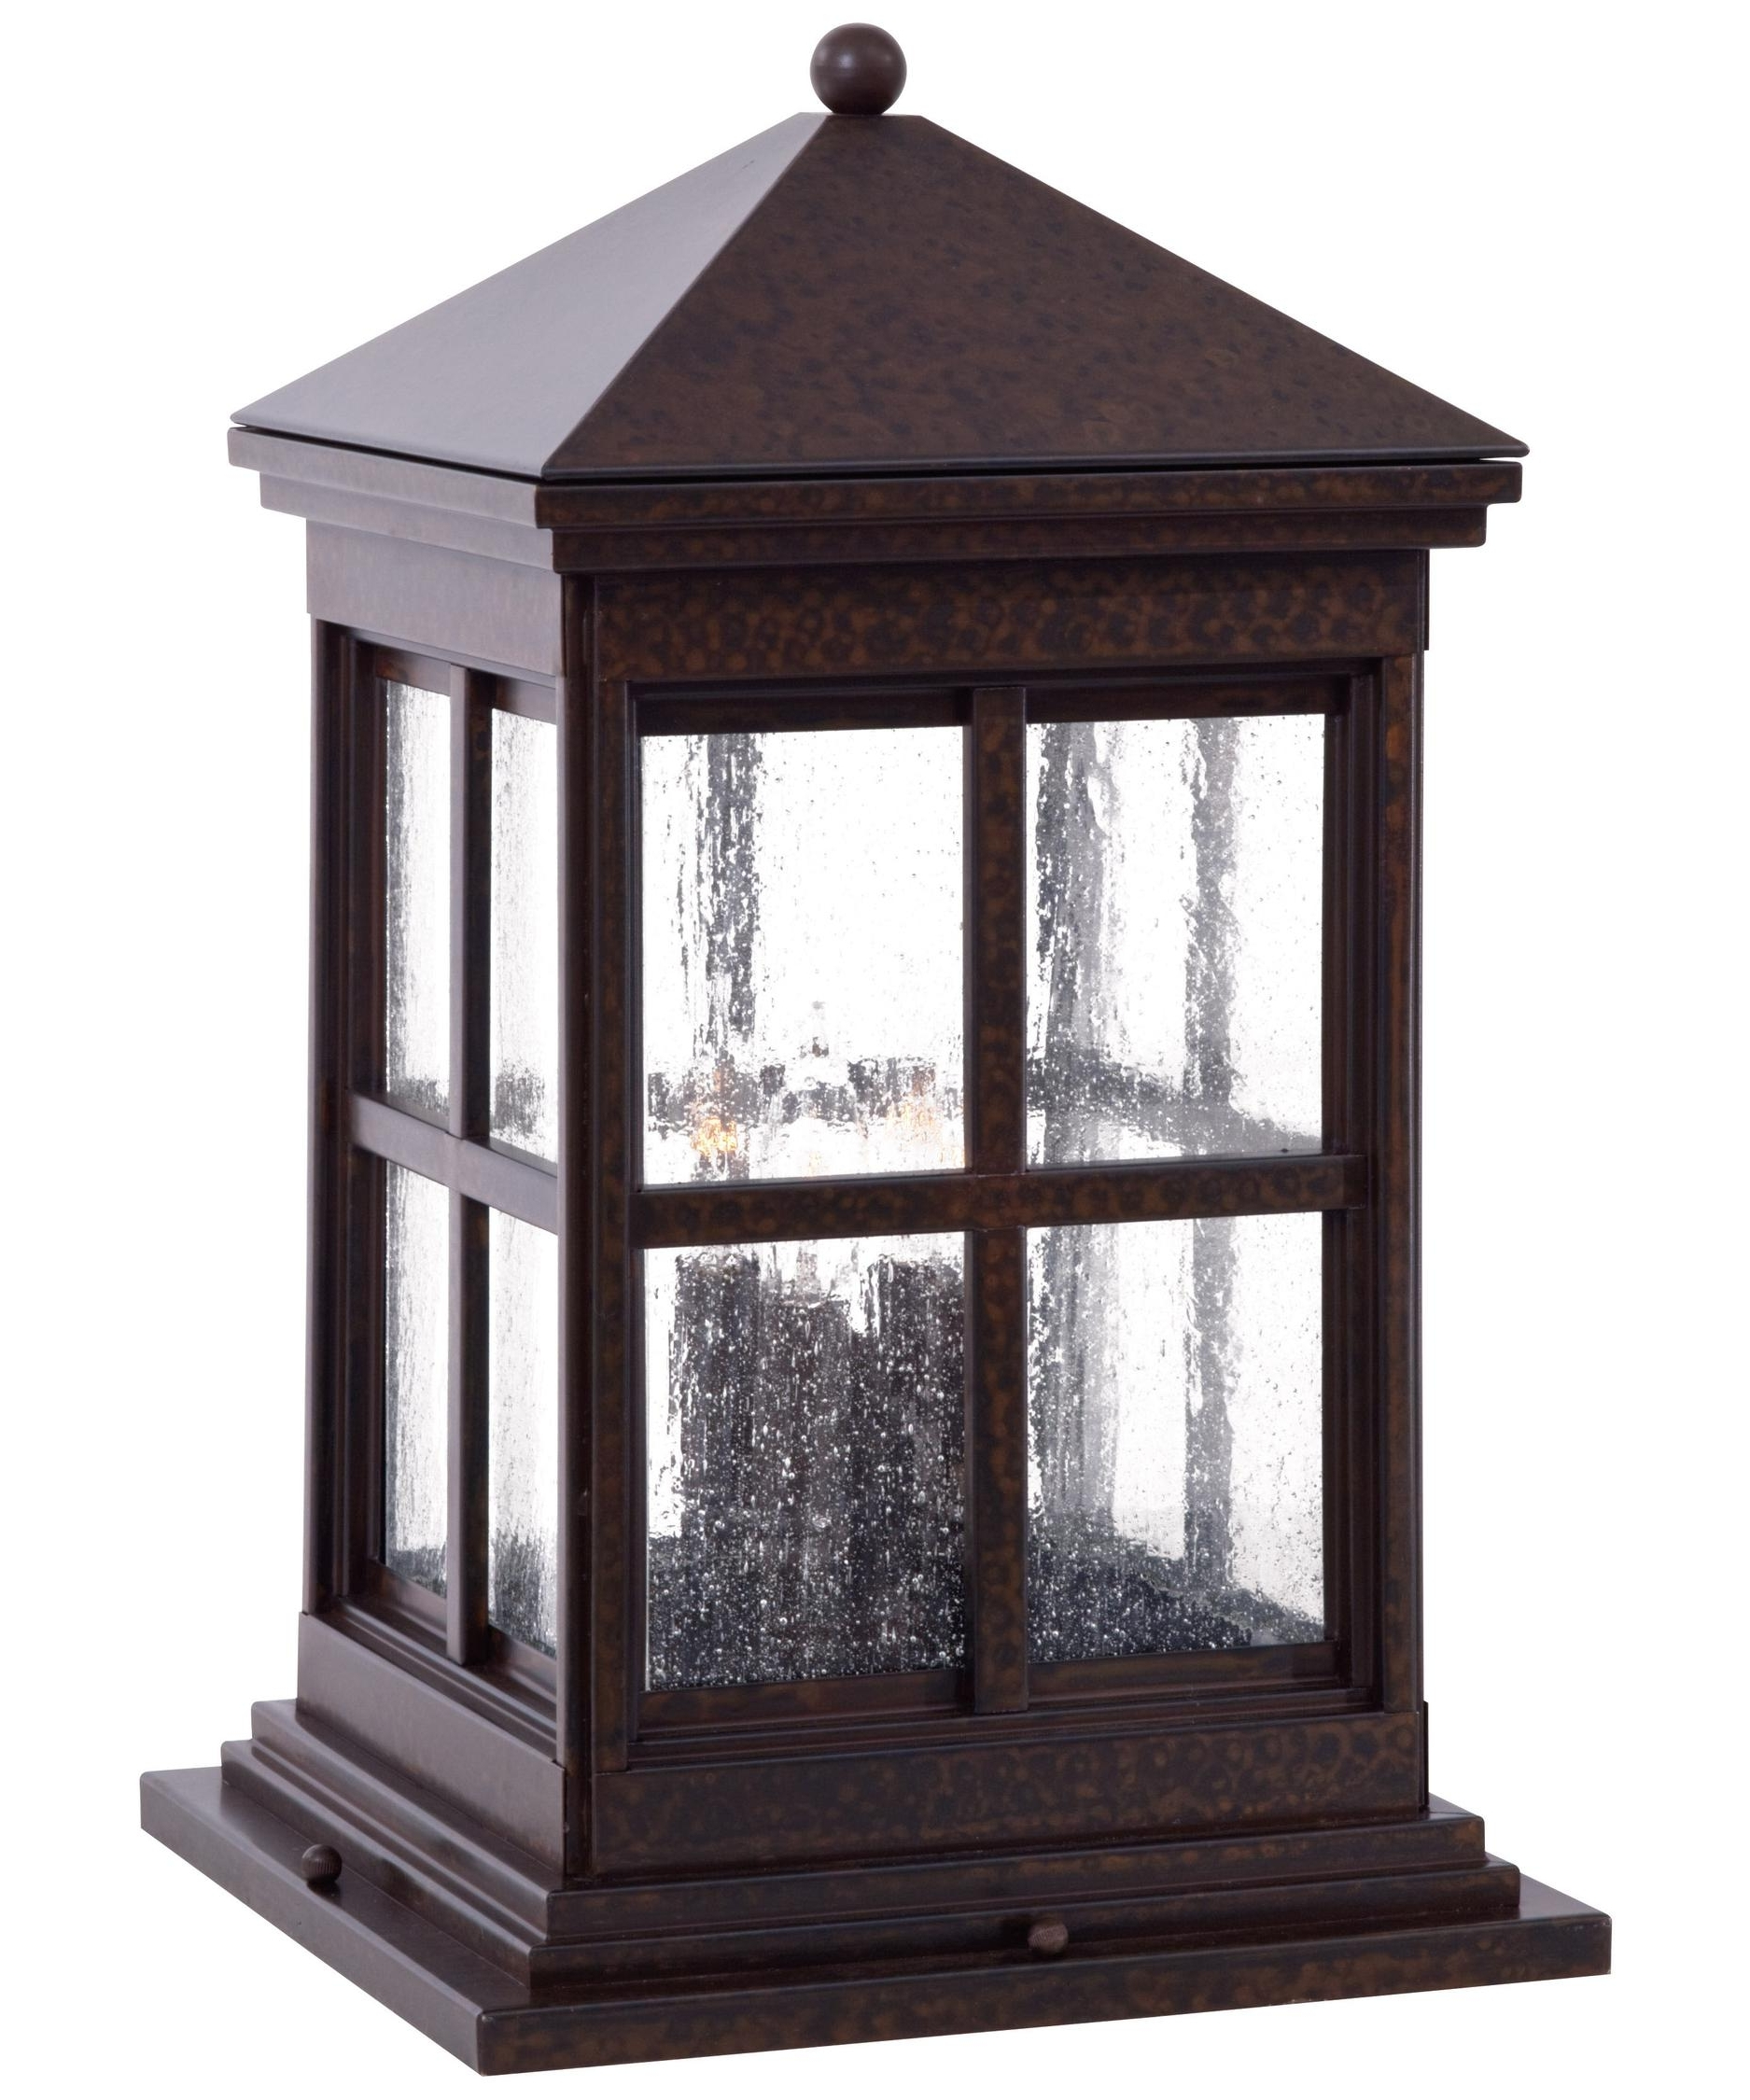 Fashionable Minka Lavery 8567 Berkeley 4 Light Outdoor Pier Lamp (View 16 of 20)